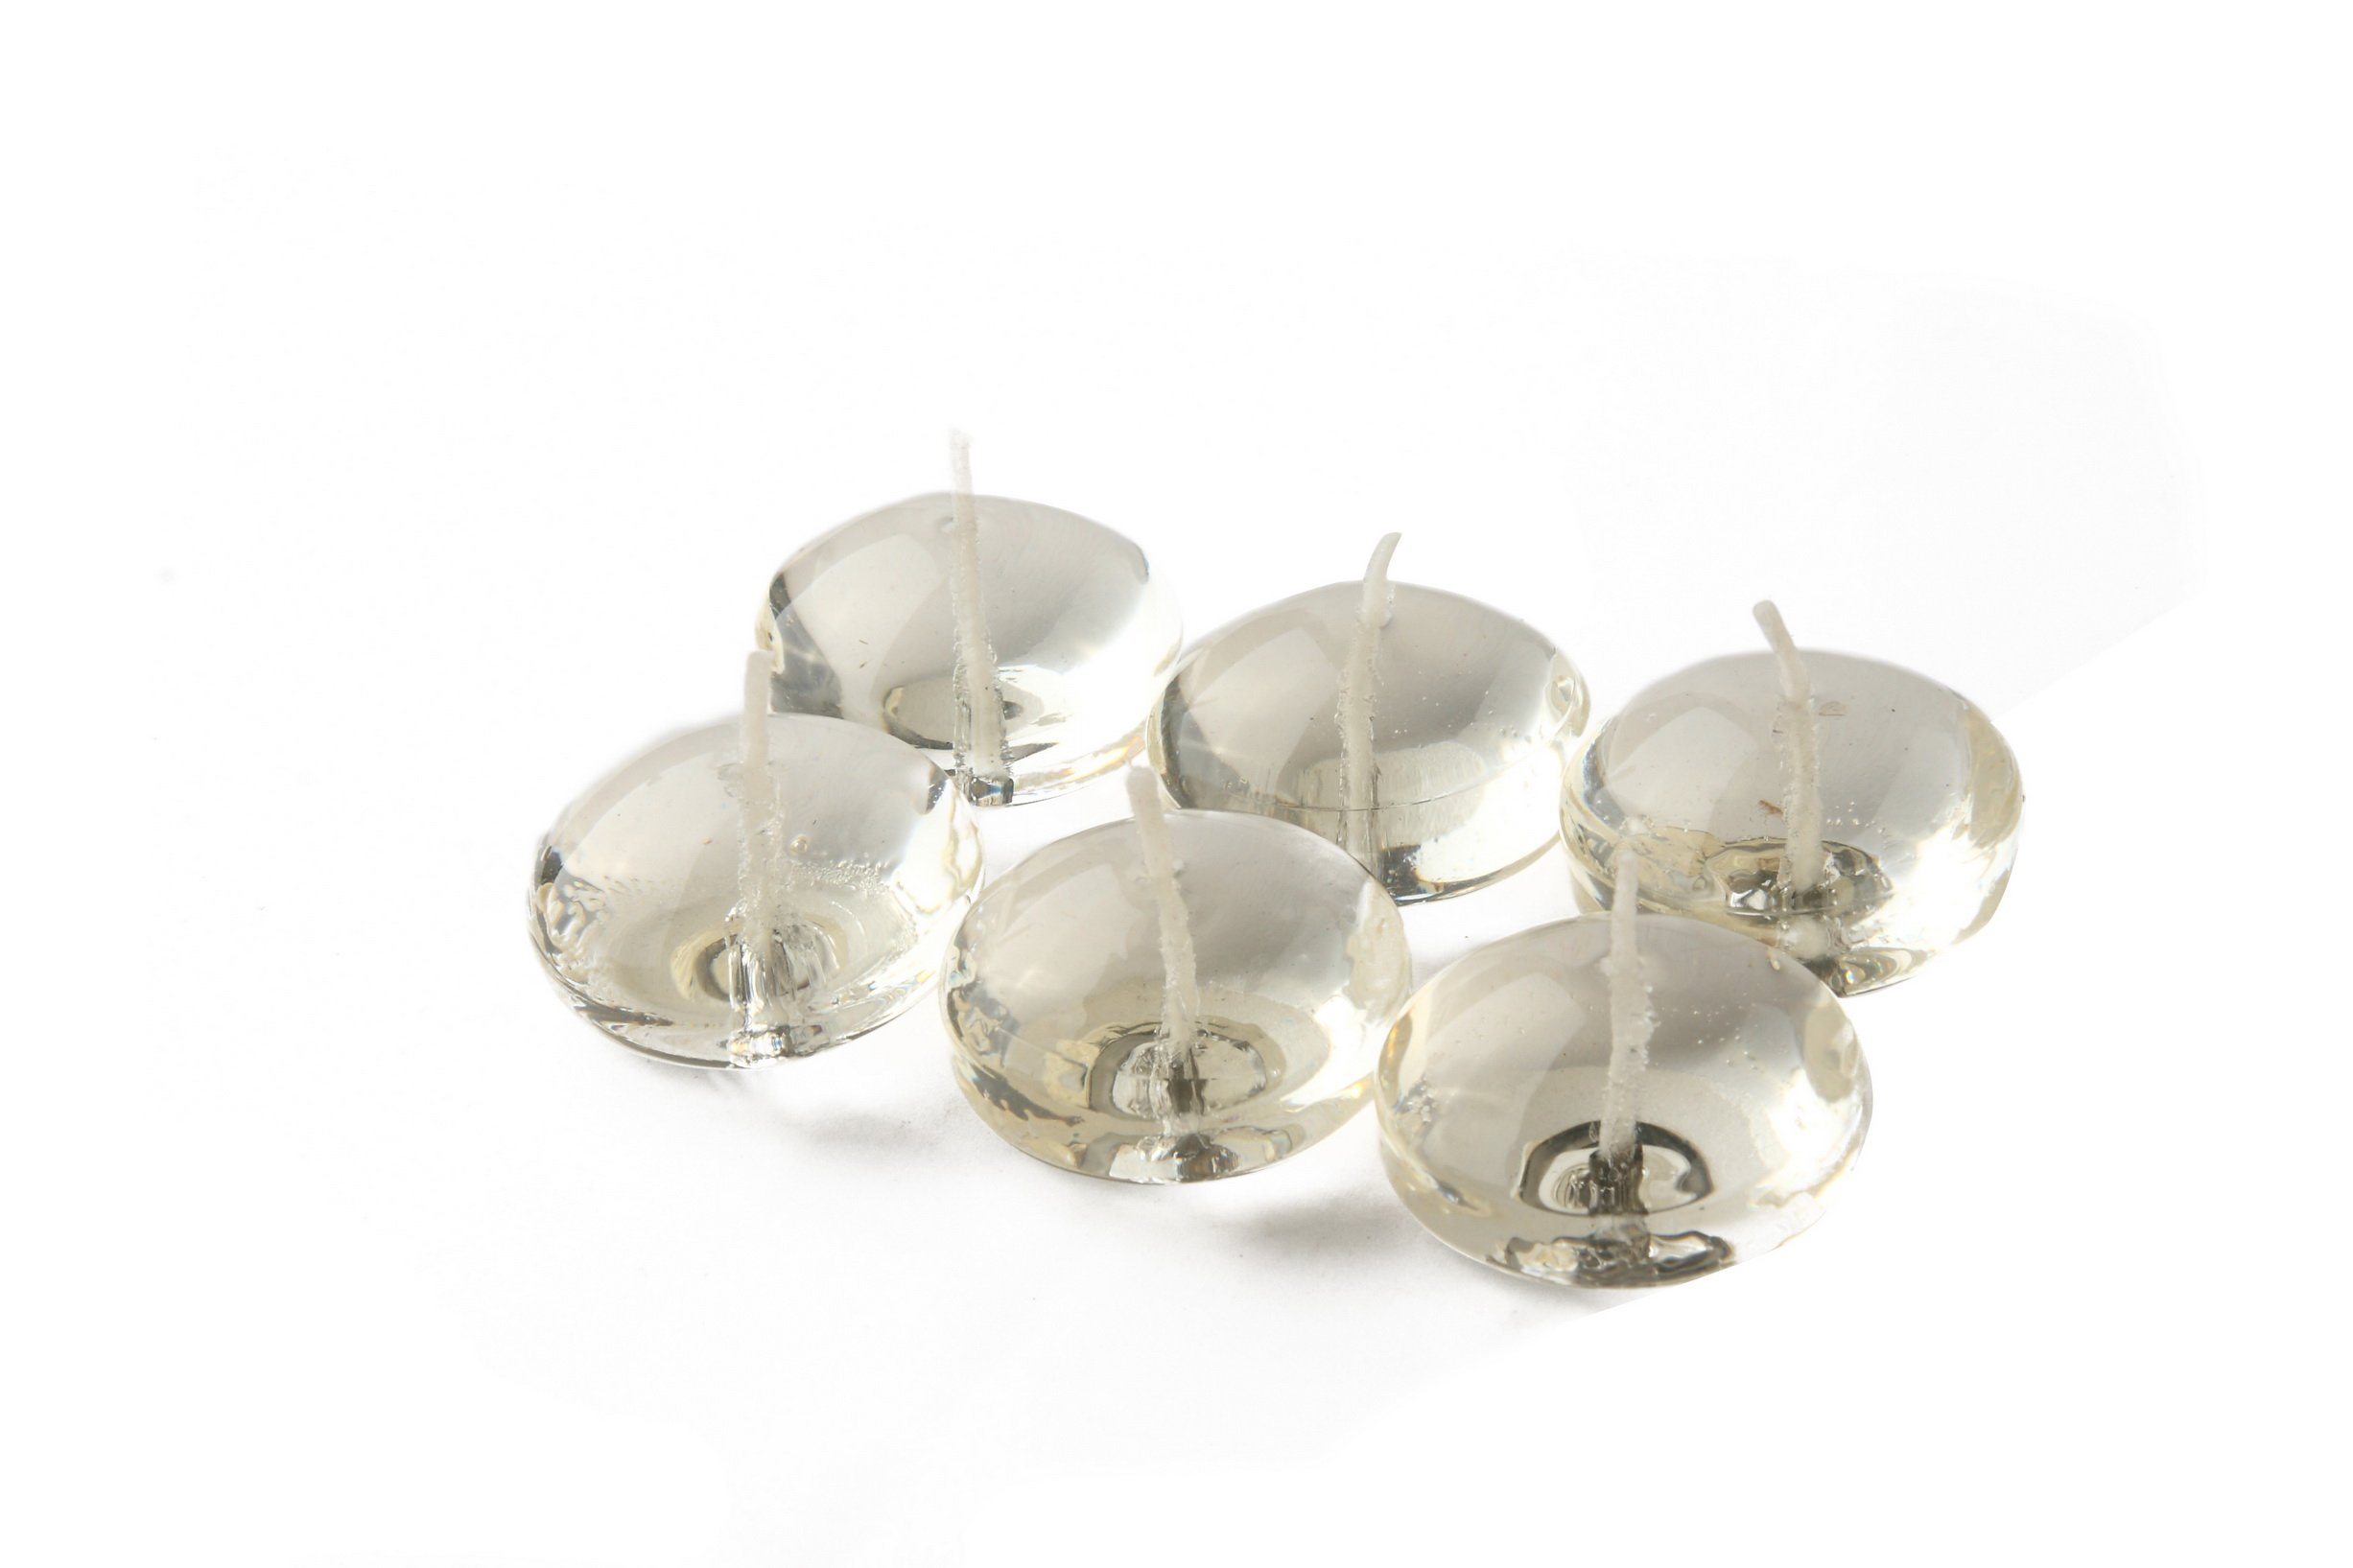 Zest Candle CFG-101_12 144-Piece Clear Gel Floating Candle, 1.75'', White by Zest Candle (Image #1)